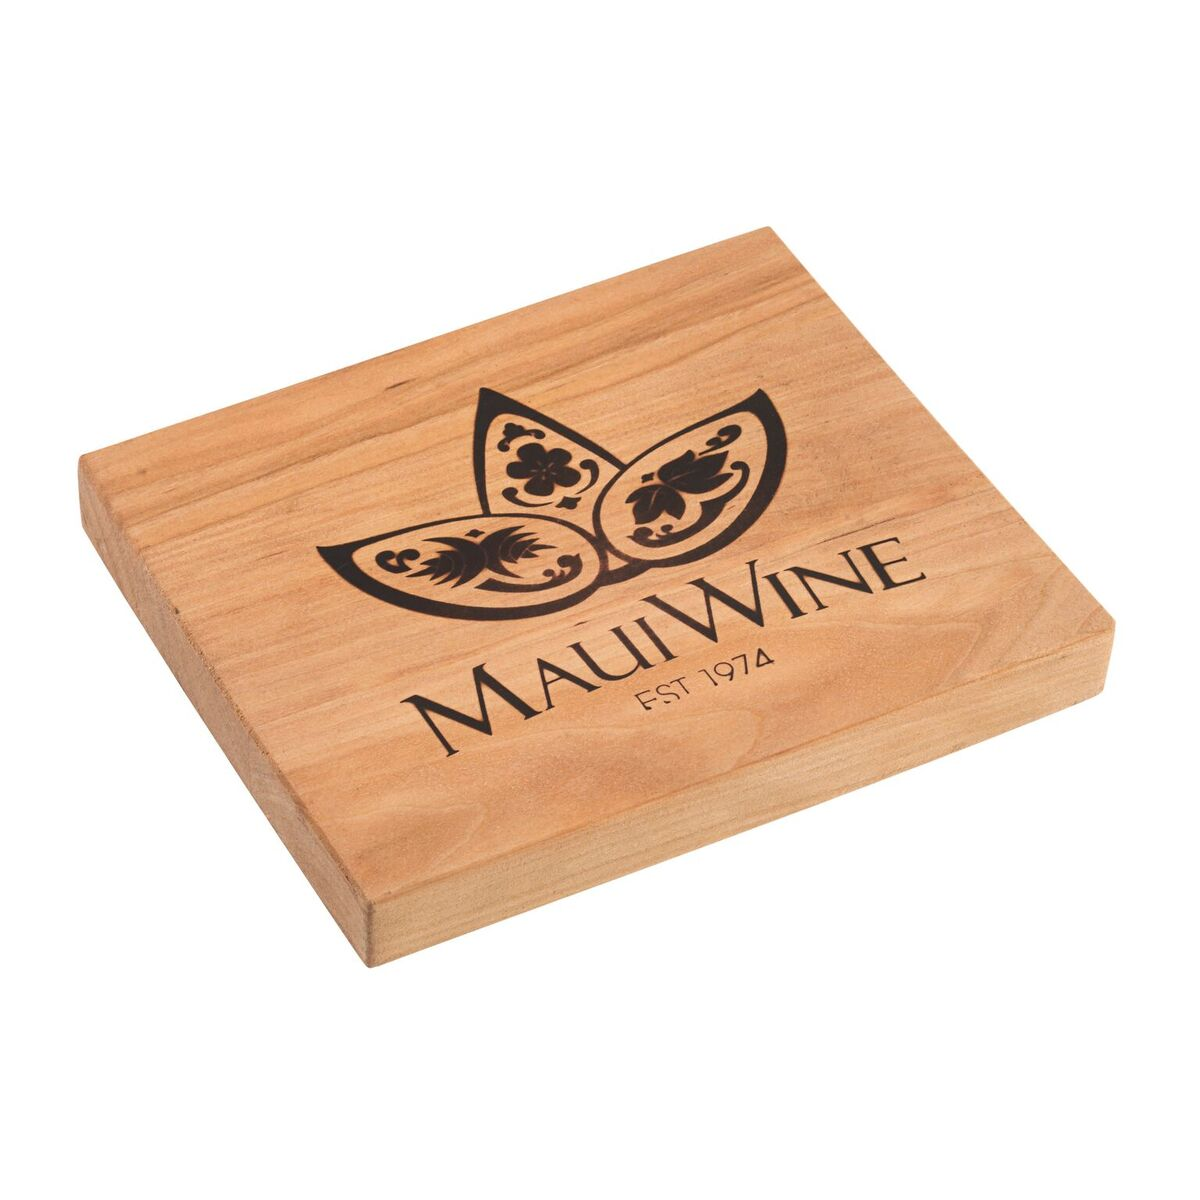 Maui Wine Branded Cheese Board